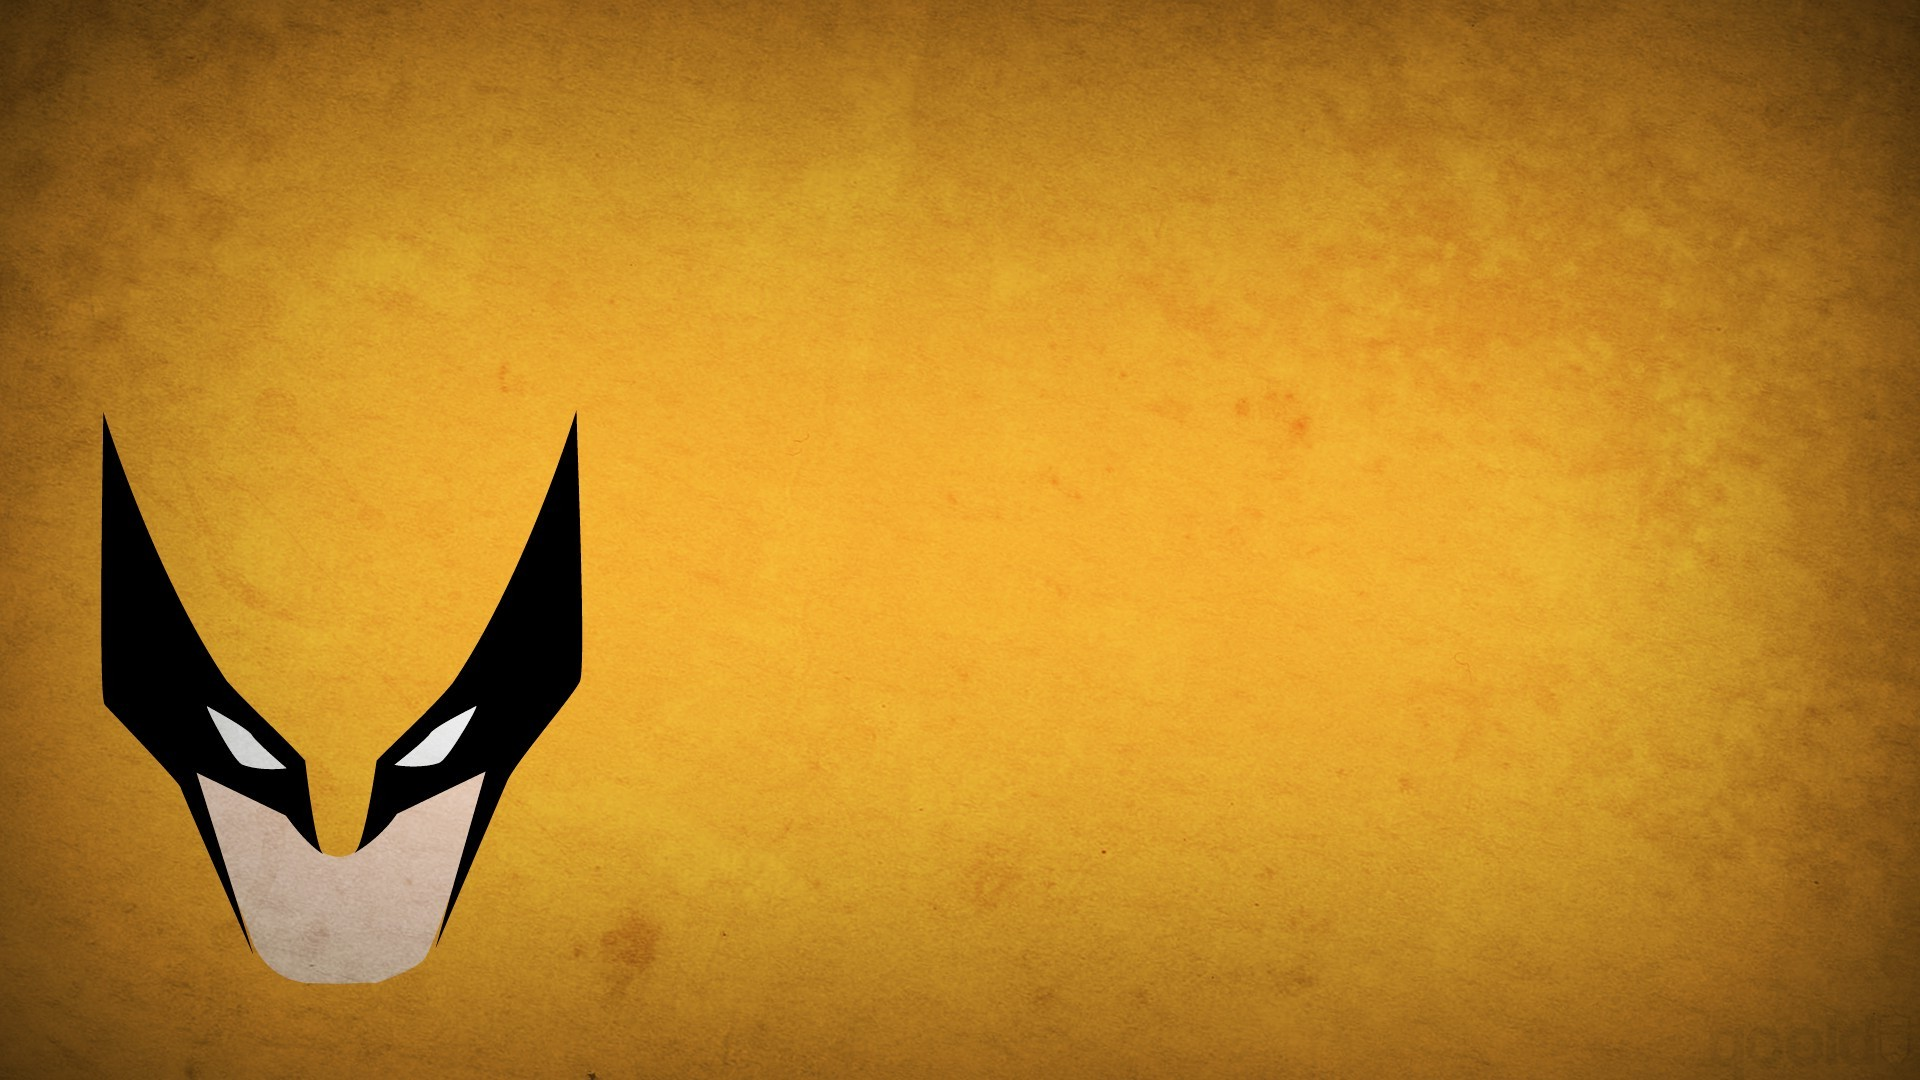 Beautiful Wallpaper High Resolution Wolverine - Heroes-HD-Wallpapers-015  You Should Have_743579.jpg